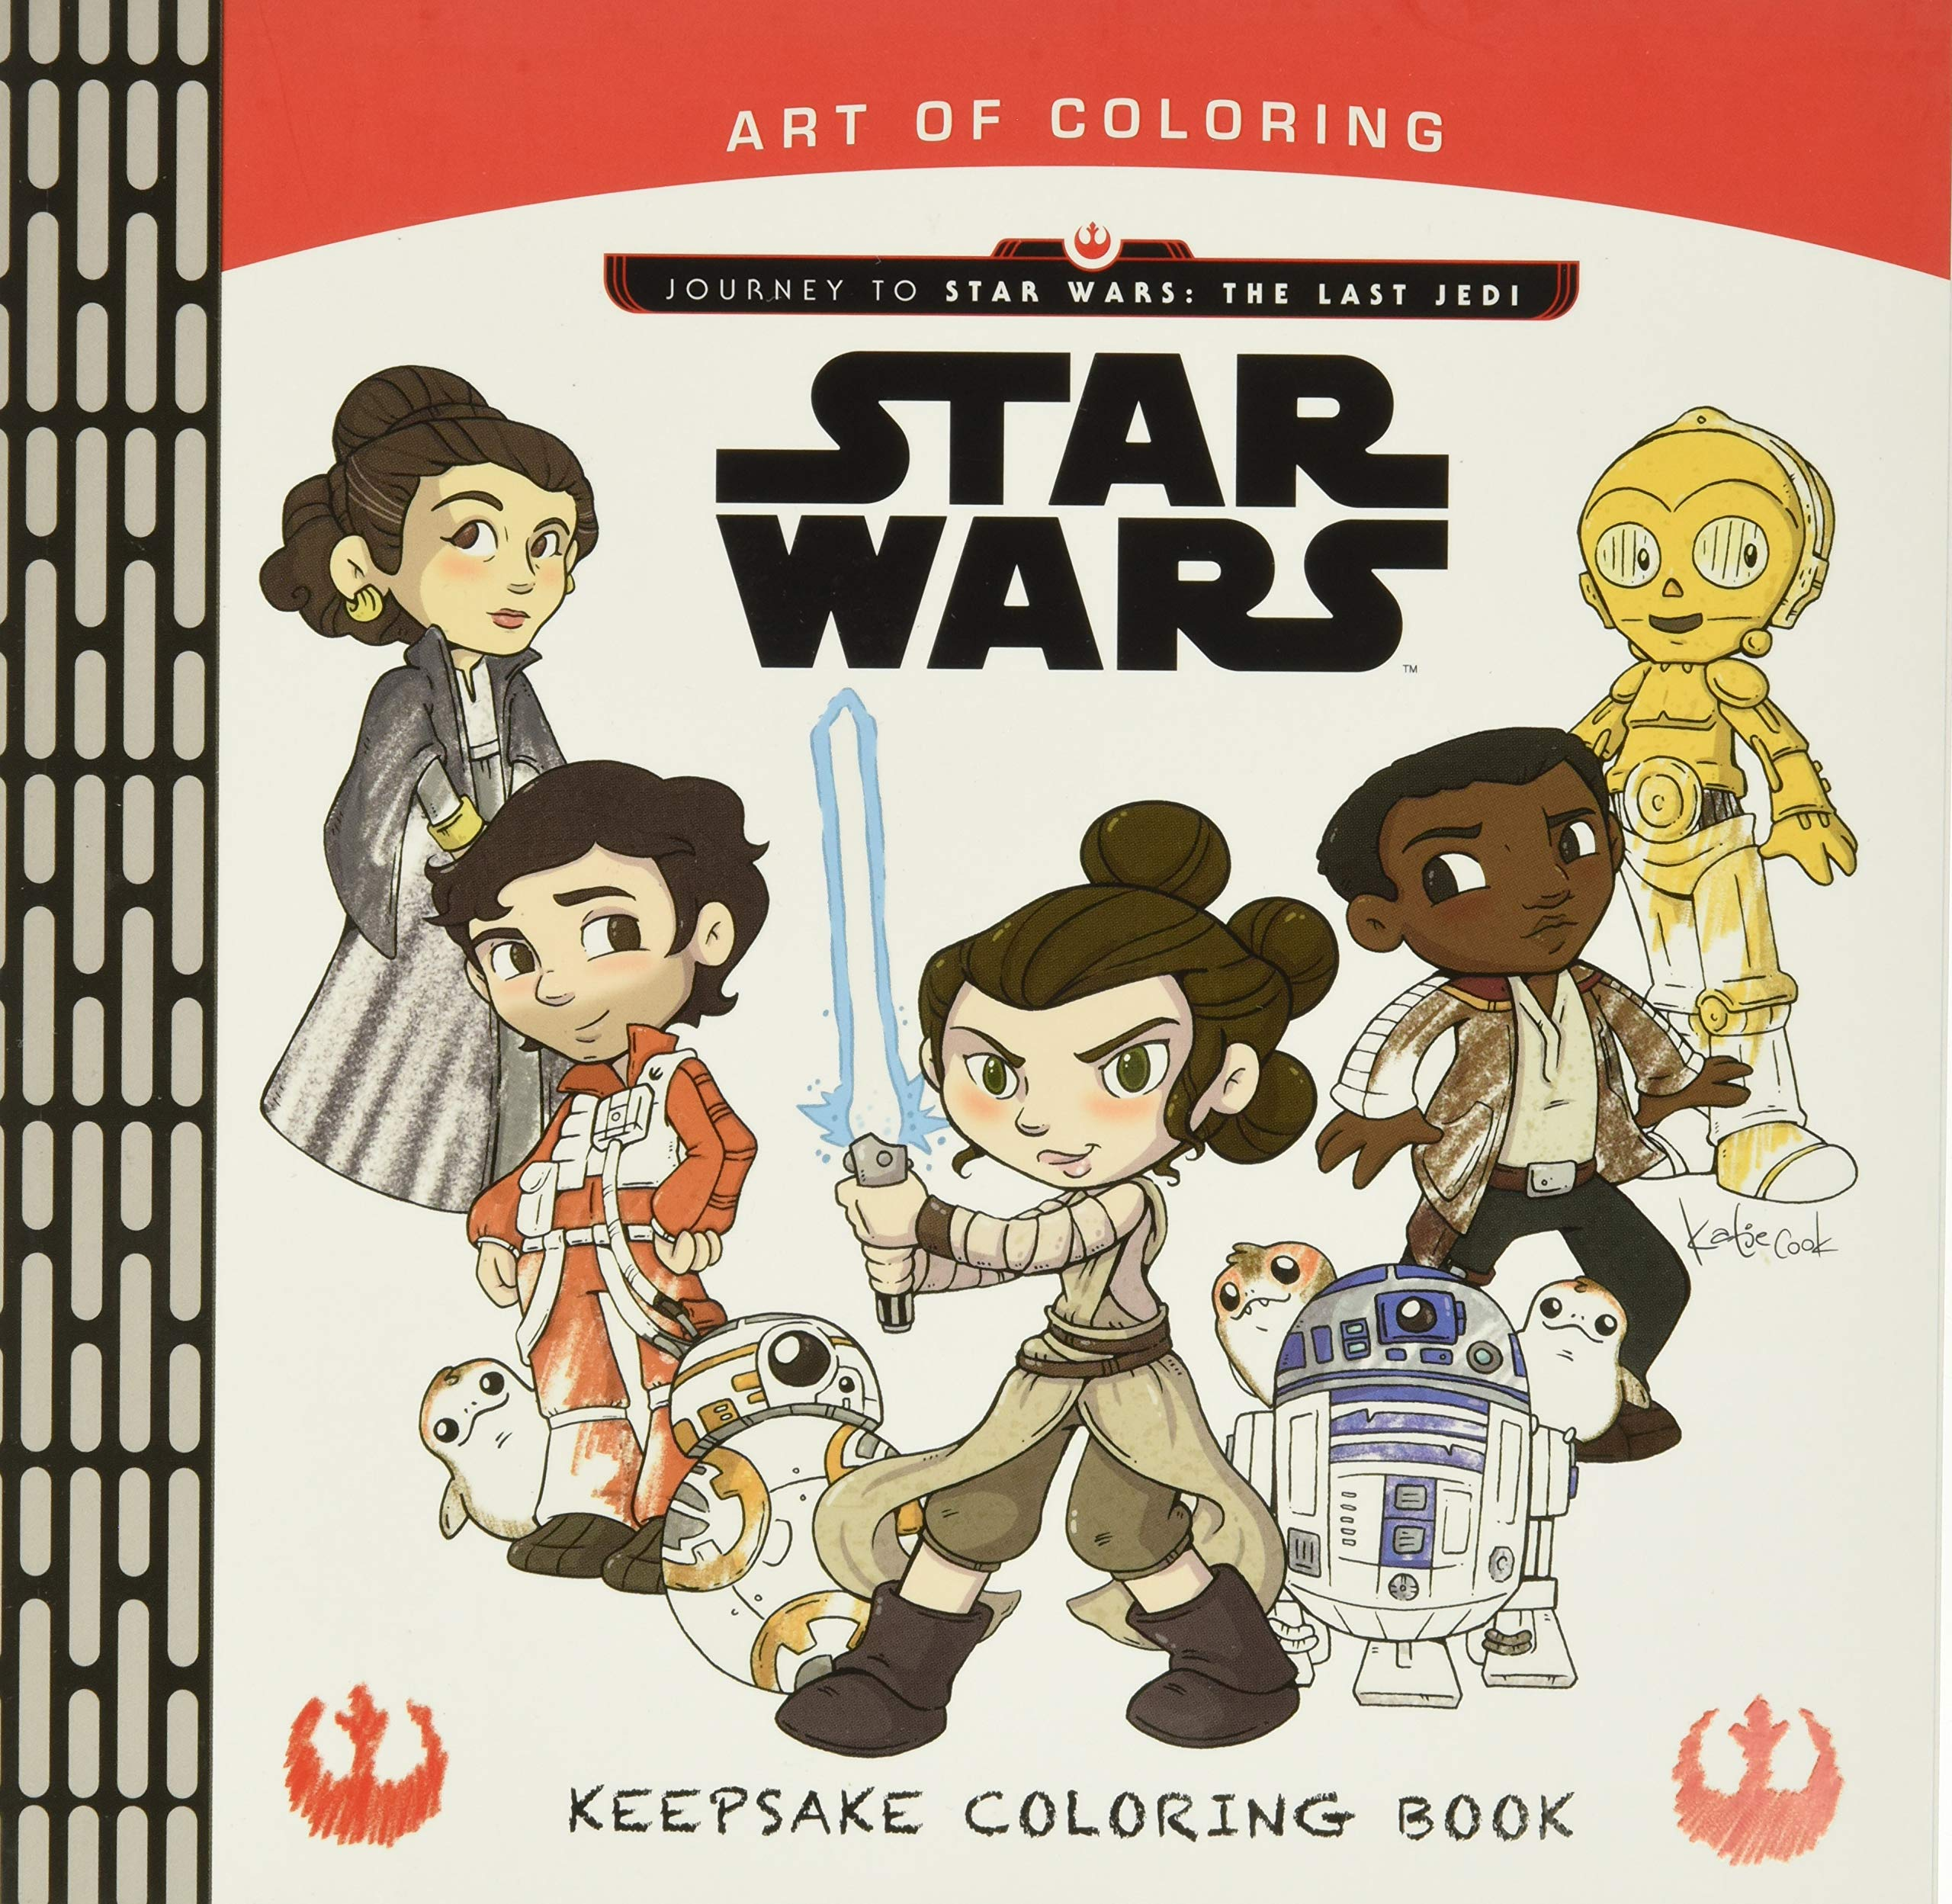 Star Wars Art of Coloring - Keepsake Coloring Book